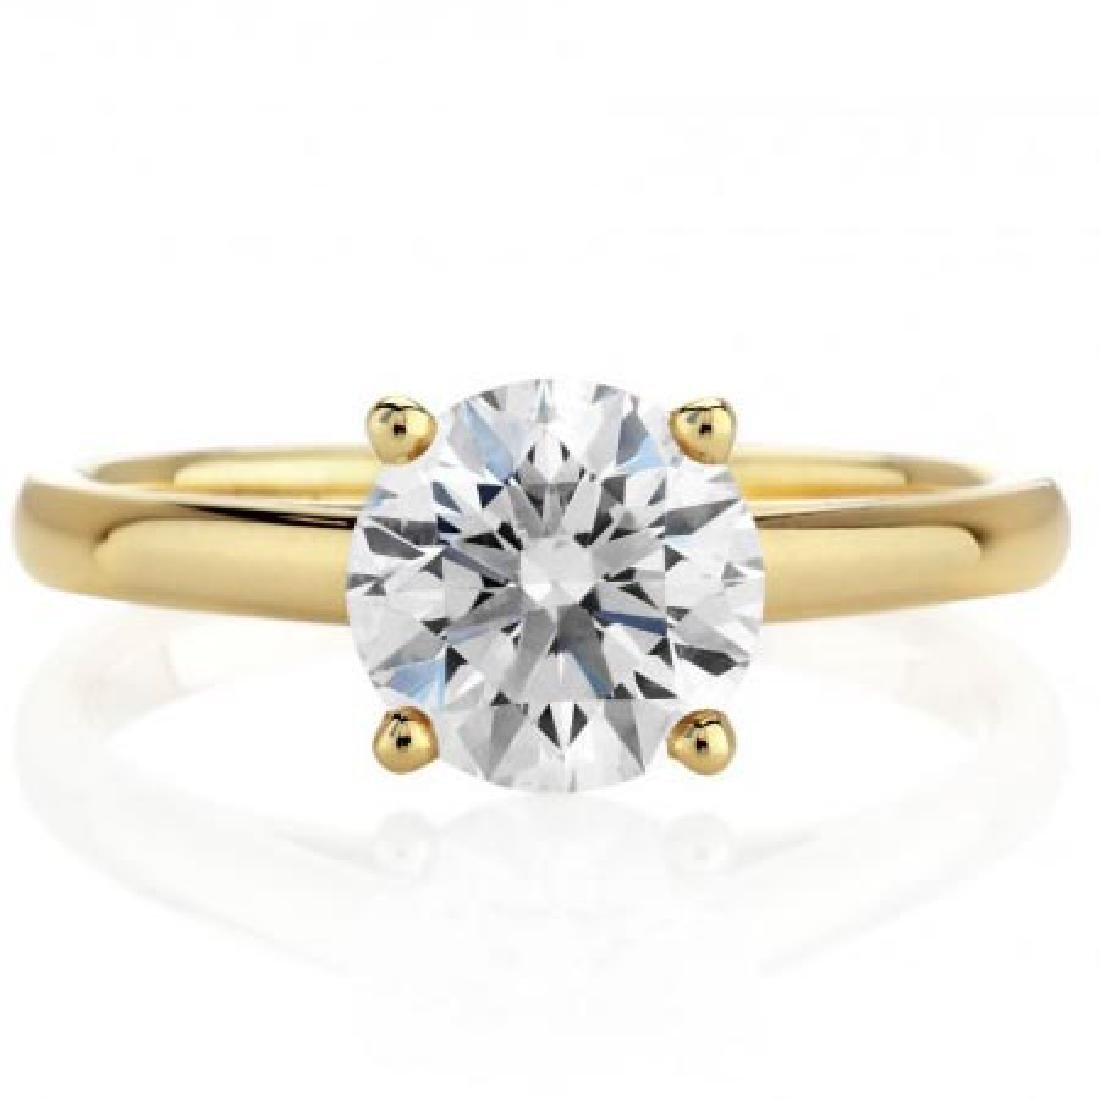 CERTIFIED 0.9 CTW ROUND D/VS2 SOLITAIRE RING IN 14K YEL